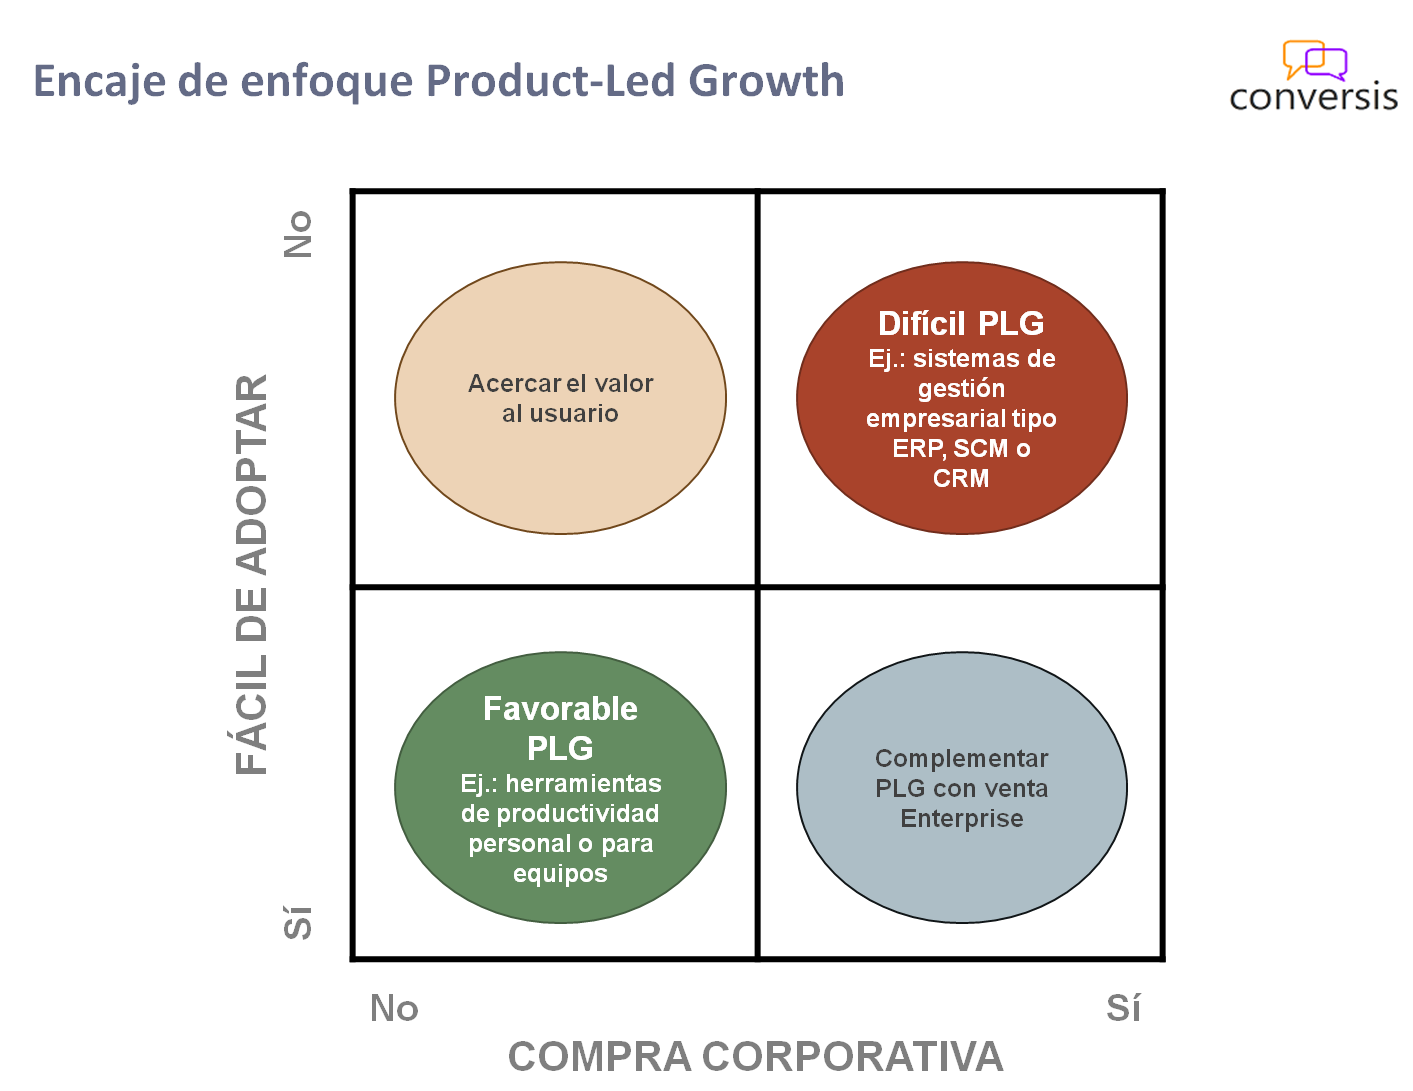 Encaje Product-Led Growth